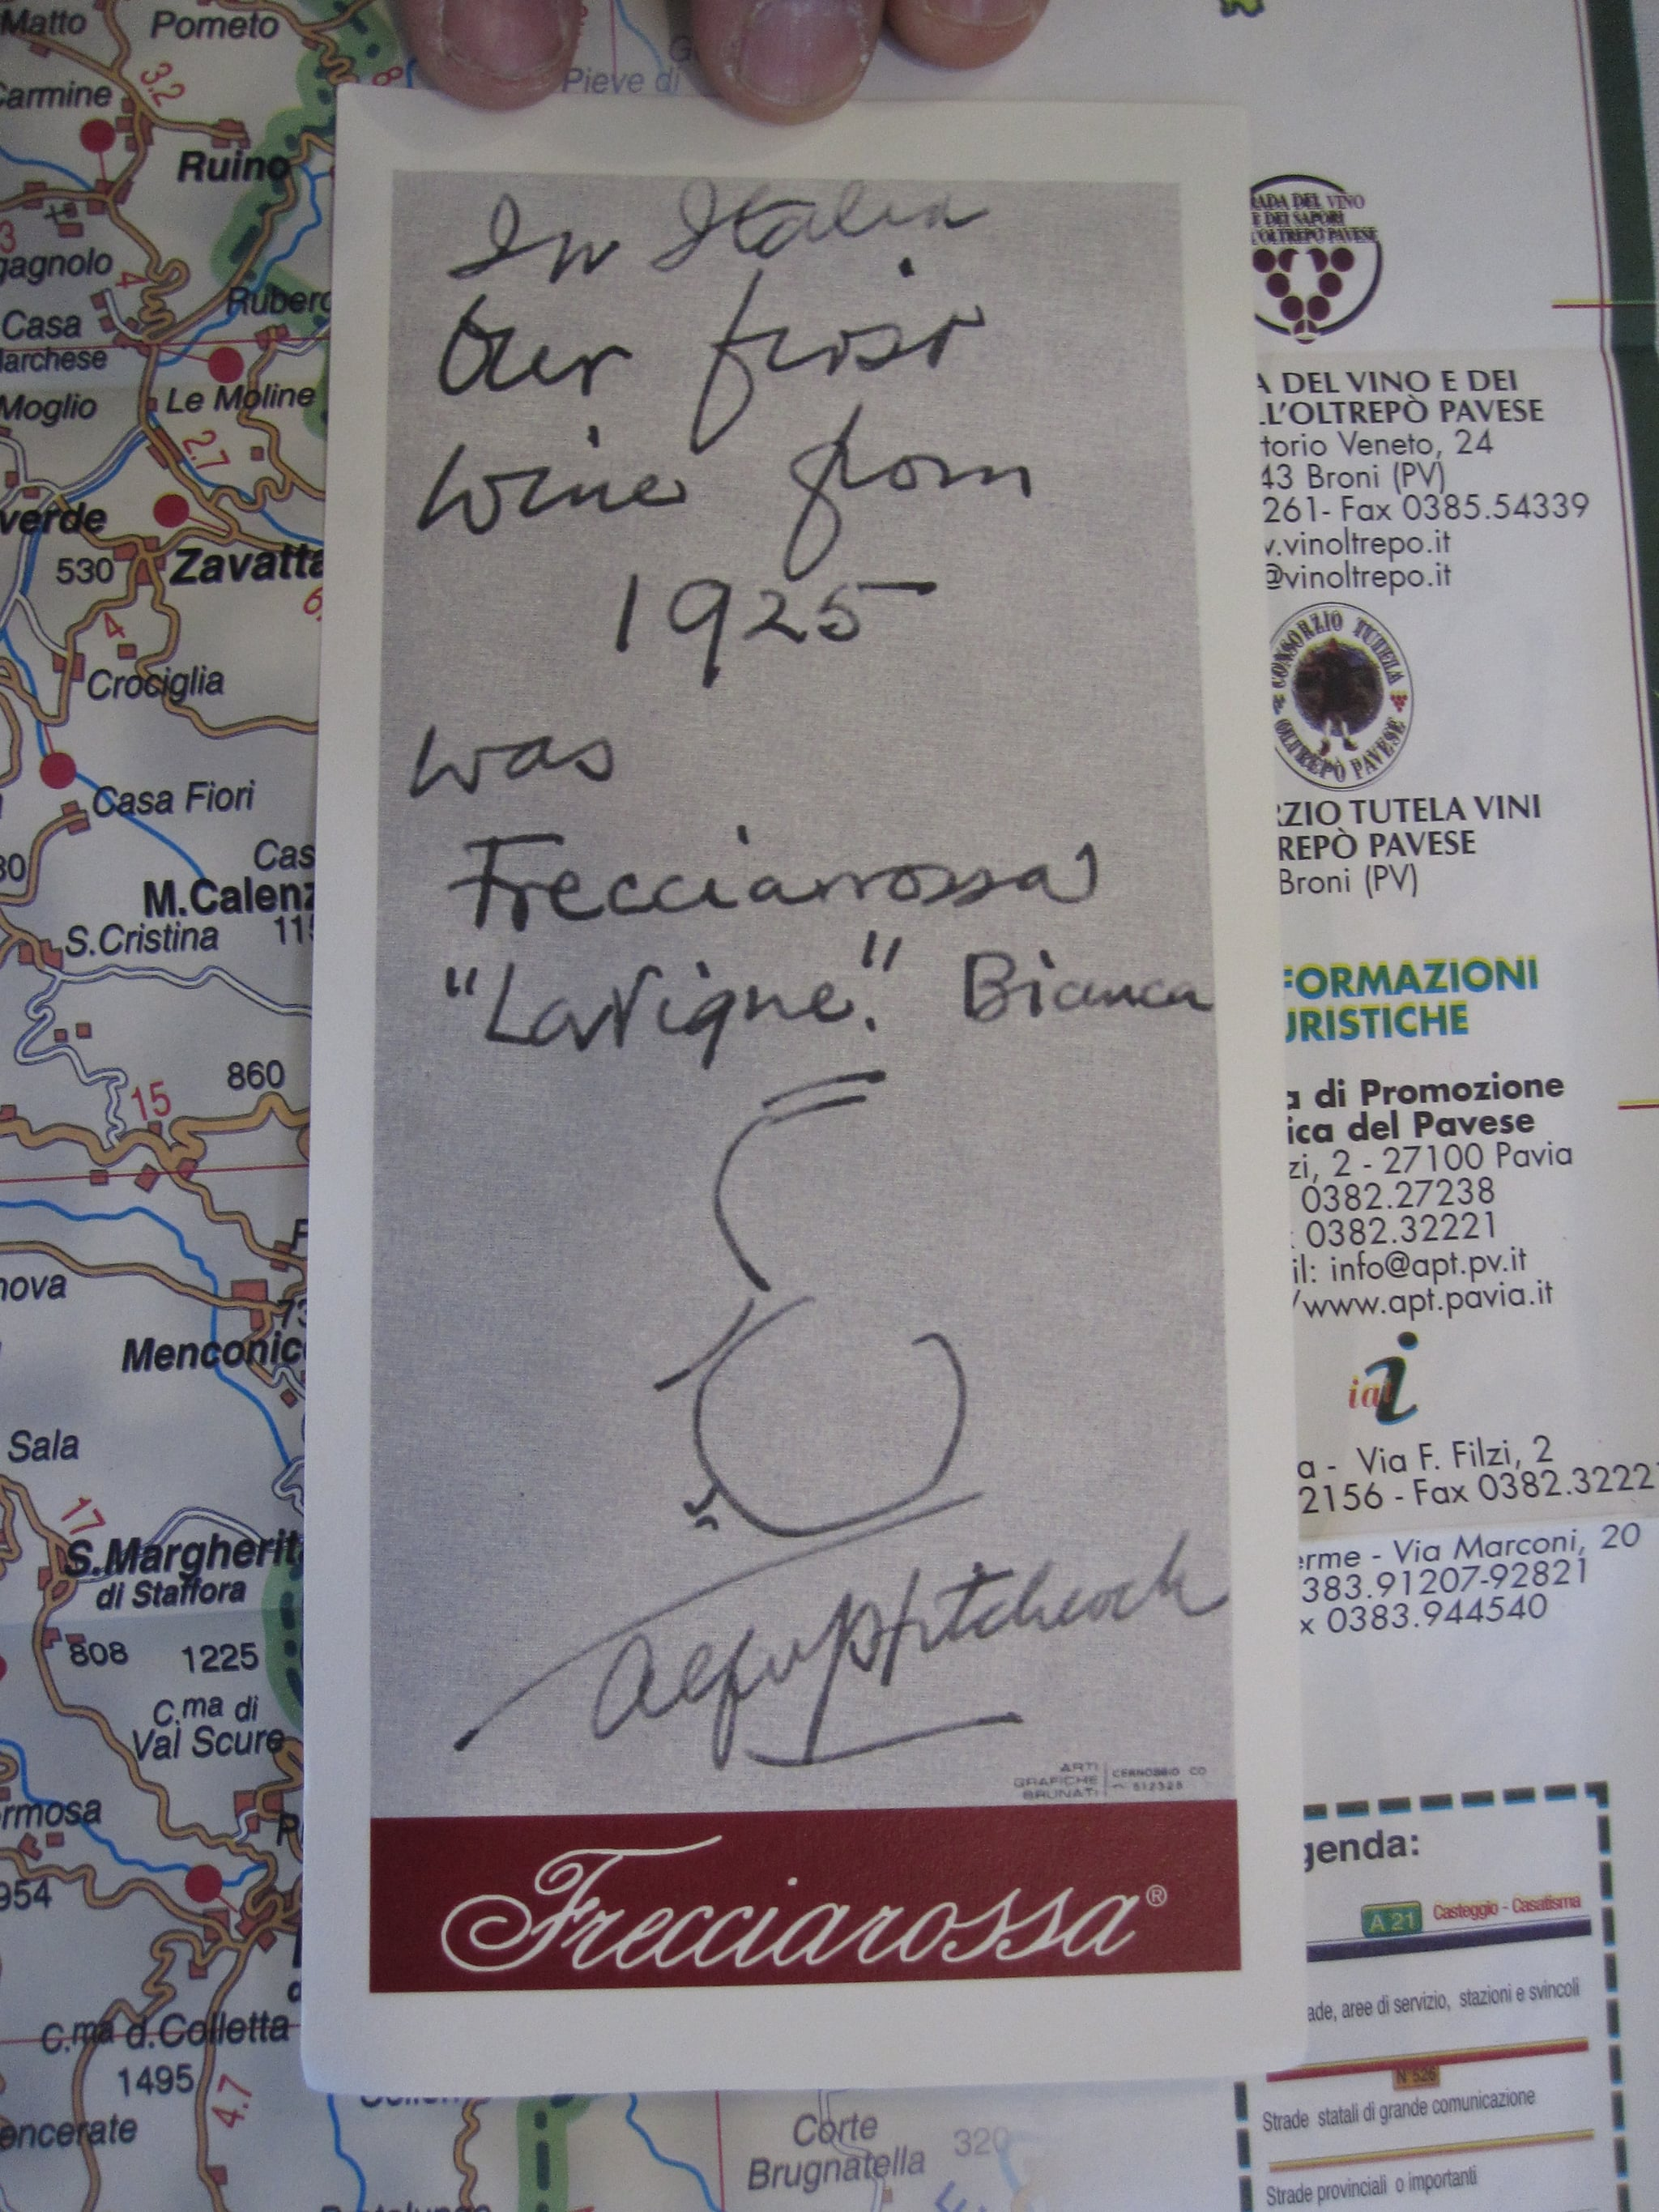 The winery Frecciarossa has been producing wines for hundreds of years. Here is a note written by Alfred Hitchcock that praises a 1925 bottling.